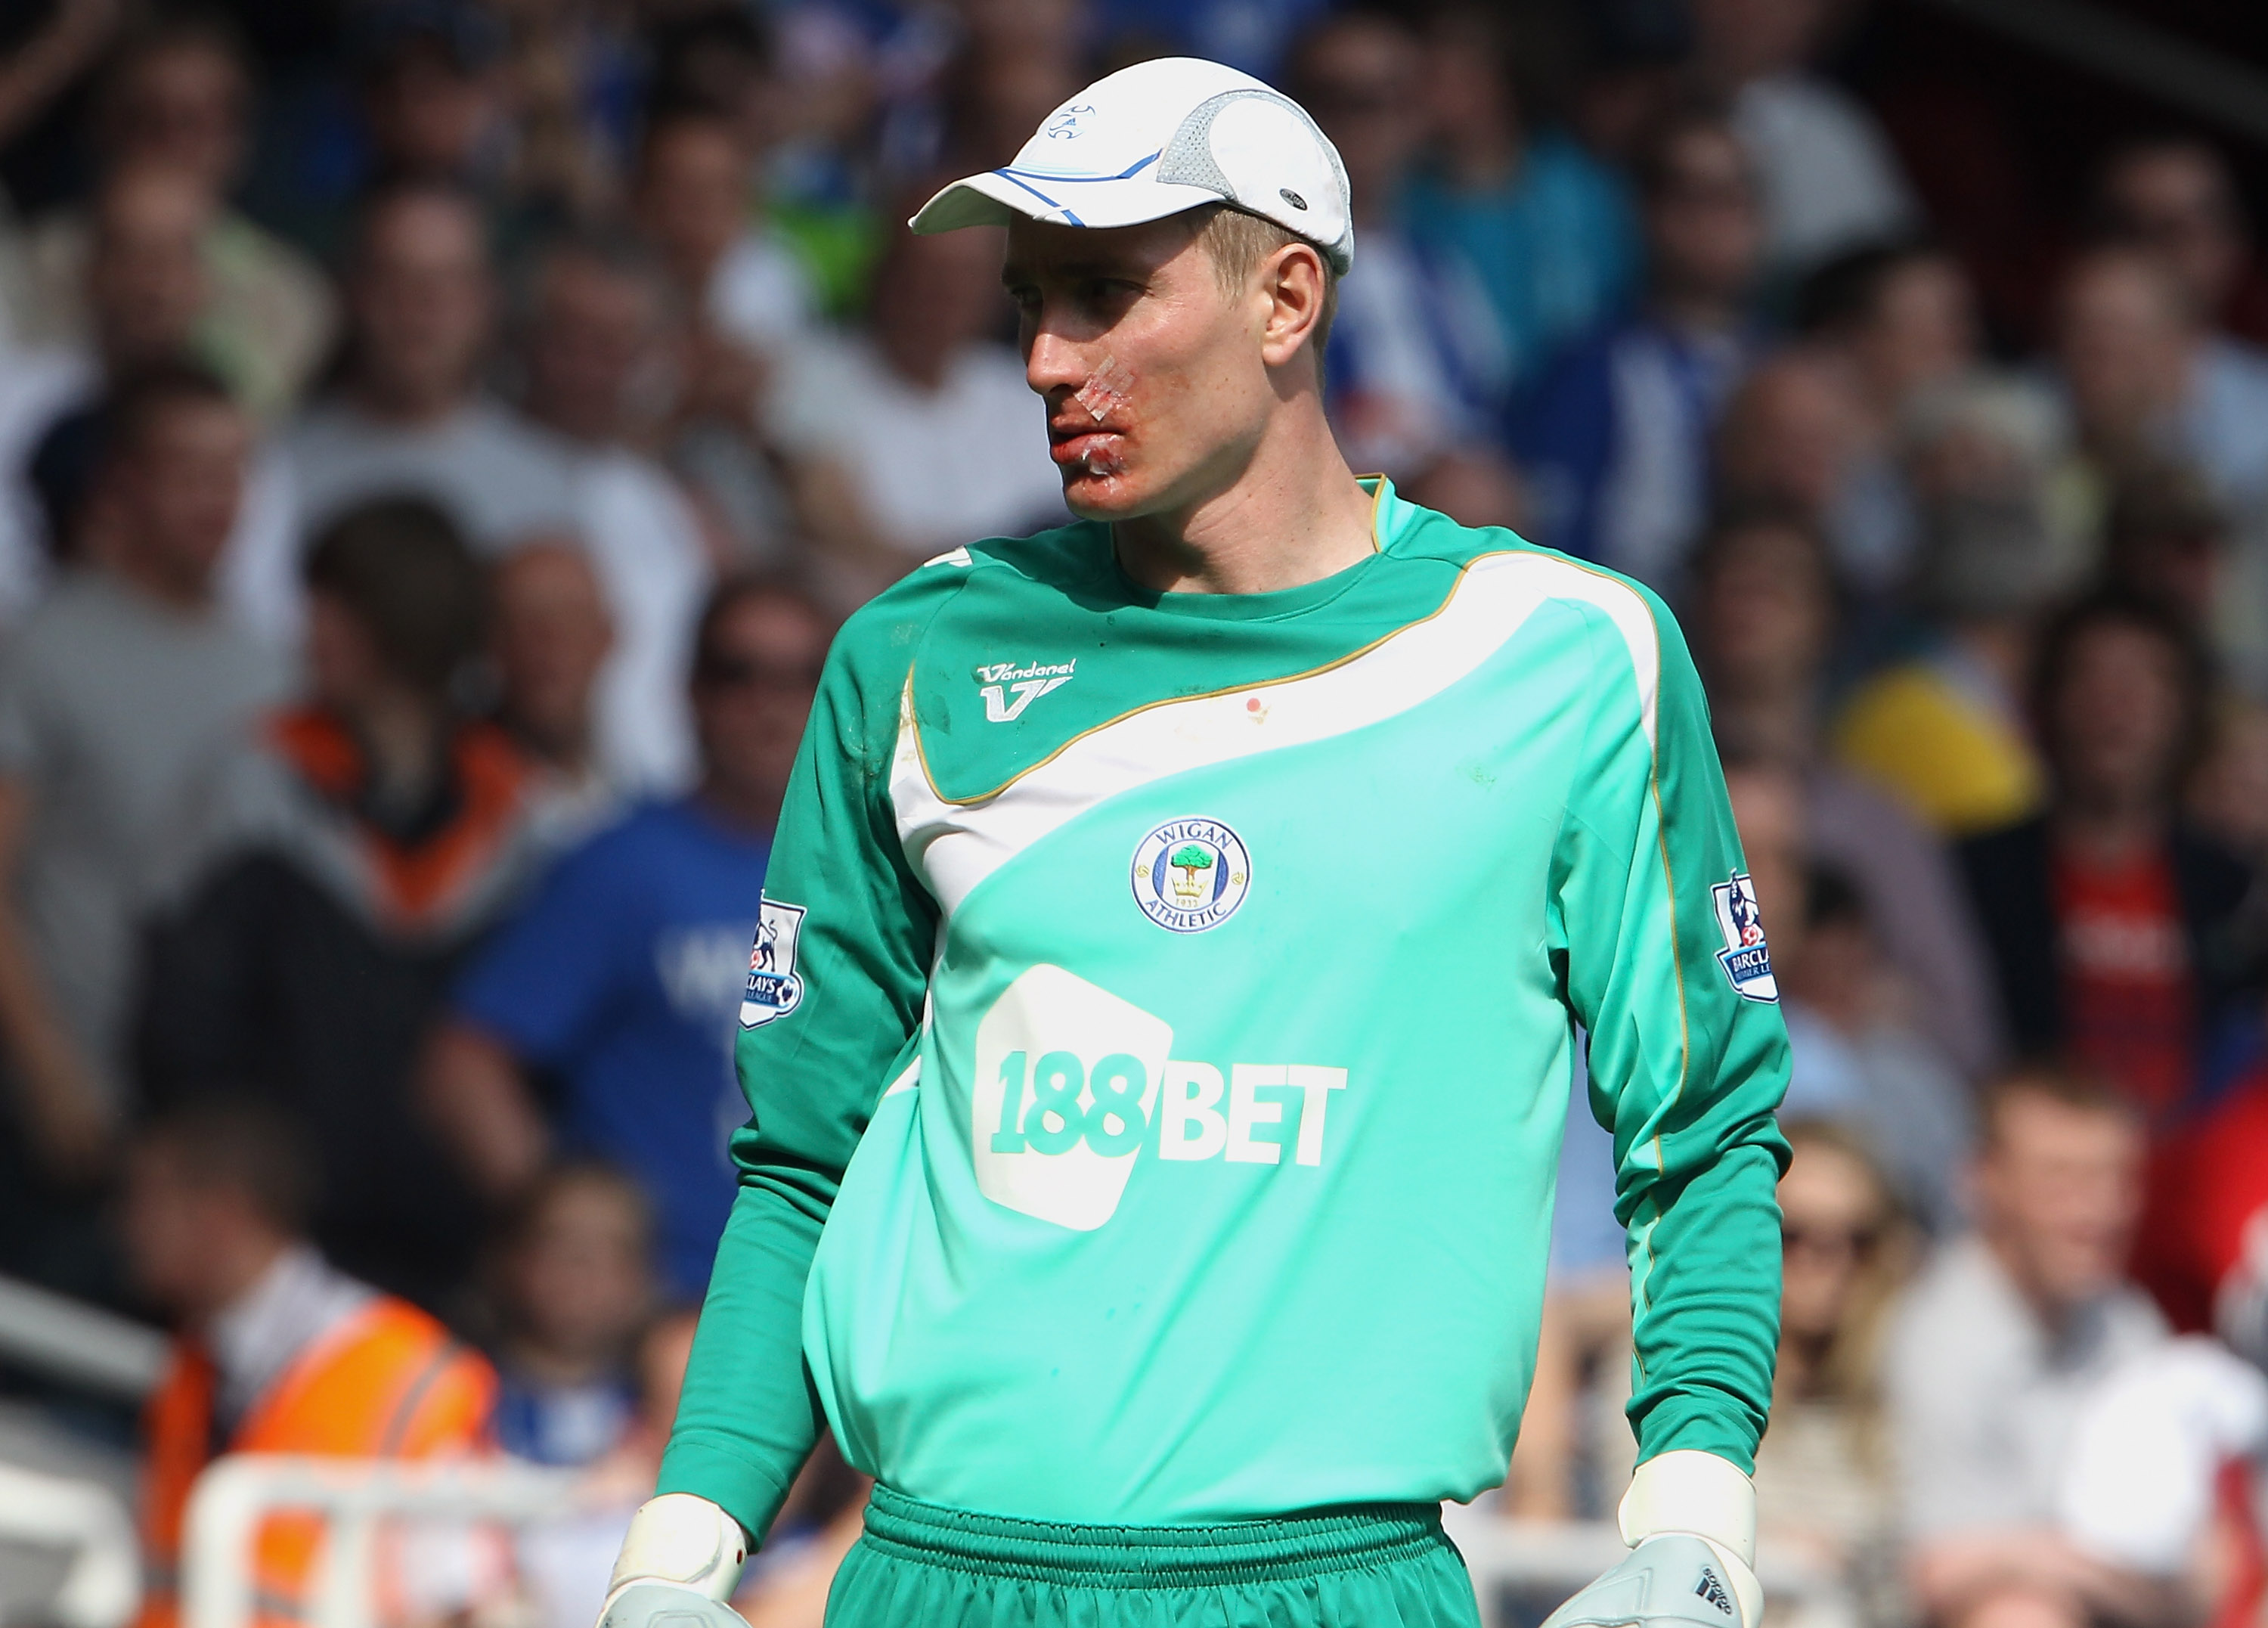 LONDON, ENGLAND - APRIL 24:  Chris Kirkland of Wigan with plasters on his face after being injured by Carlton Cole of West Ham during the Barclays Premier League match between West Ham United and Wigan Athletic at the Boleyn Ground on April 24, 2010 in Lo